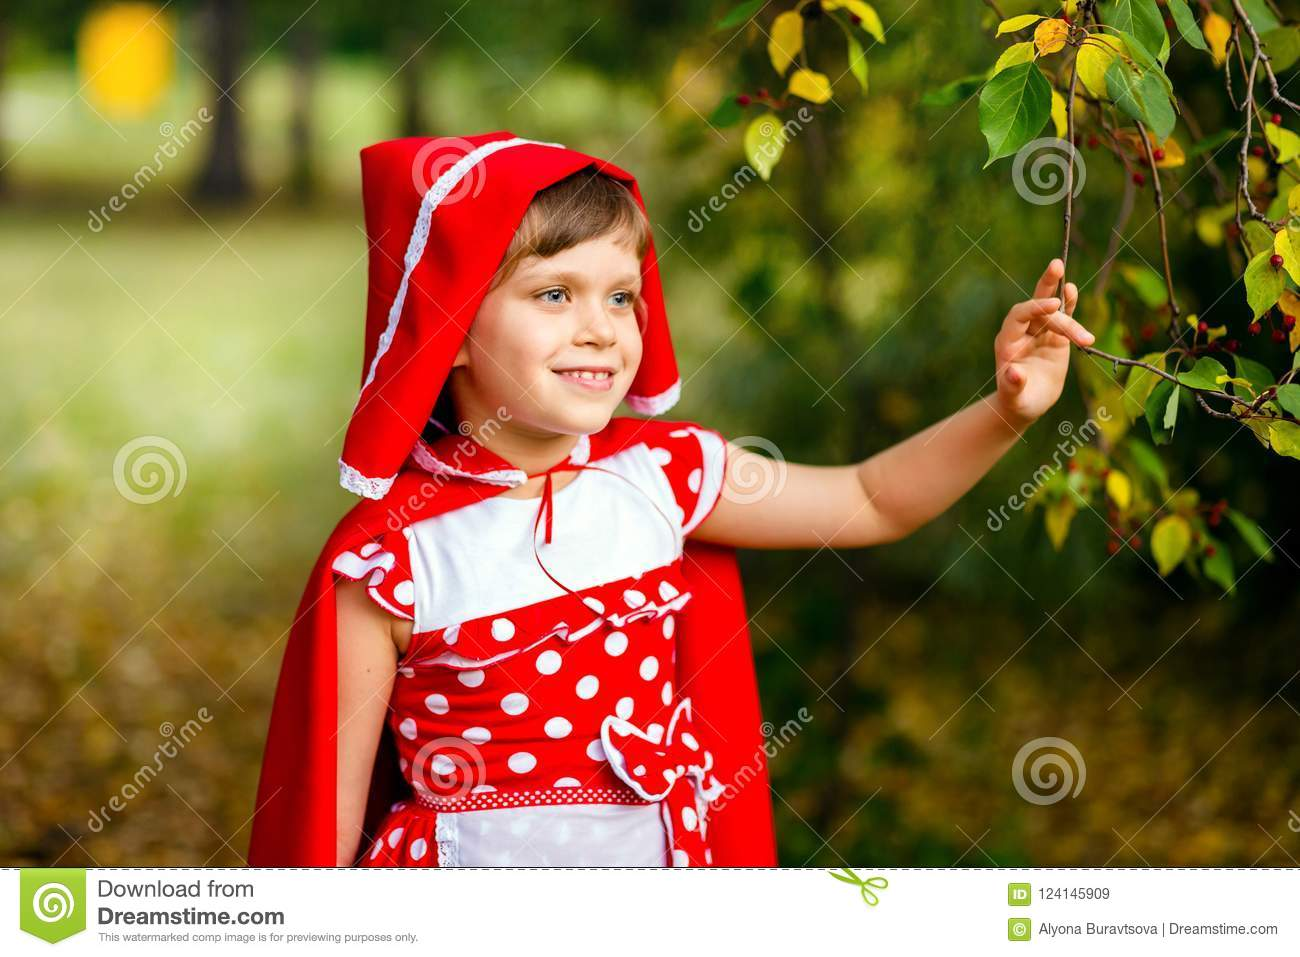 Cute seven years old girl in autumn outdoors